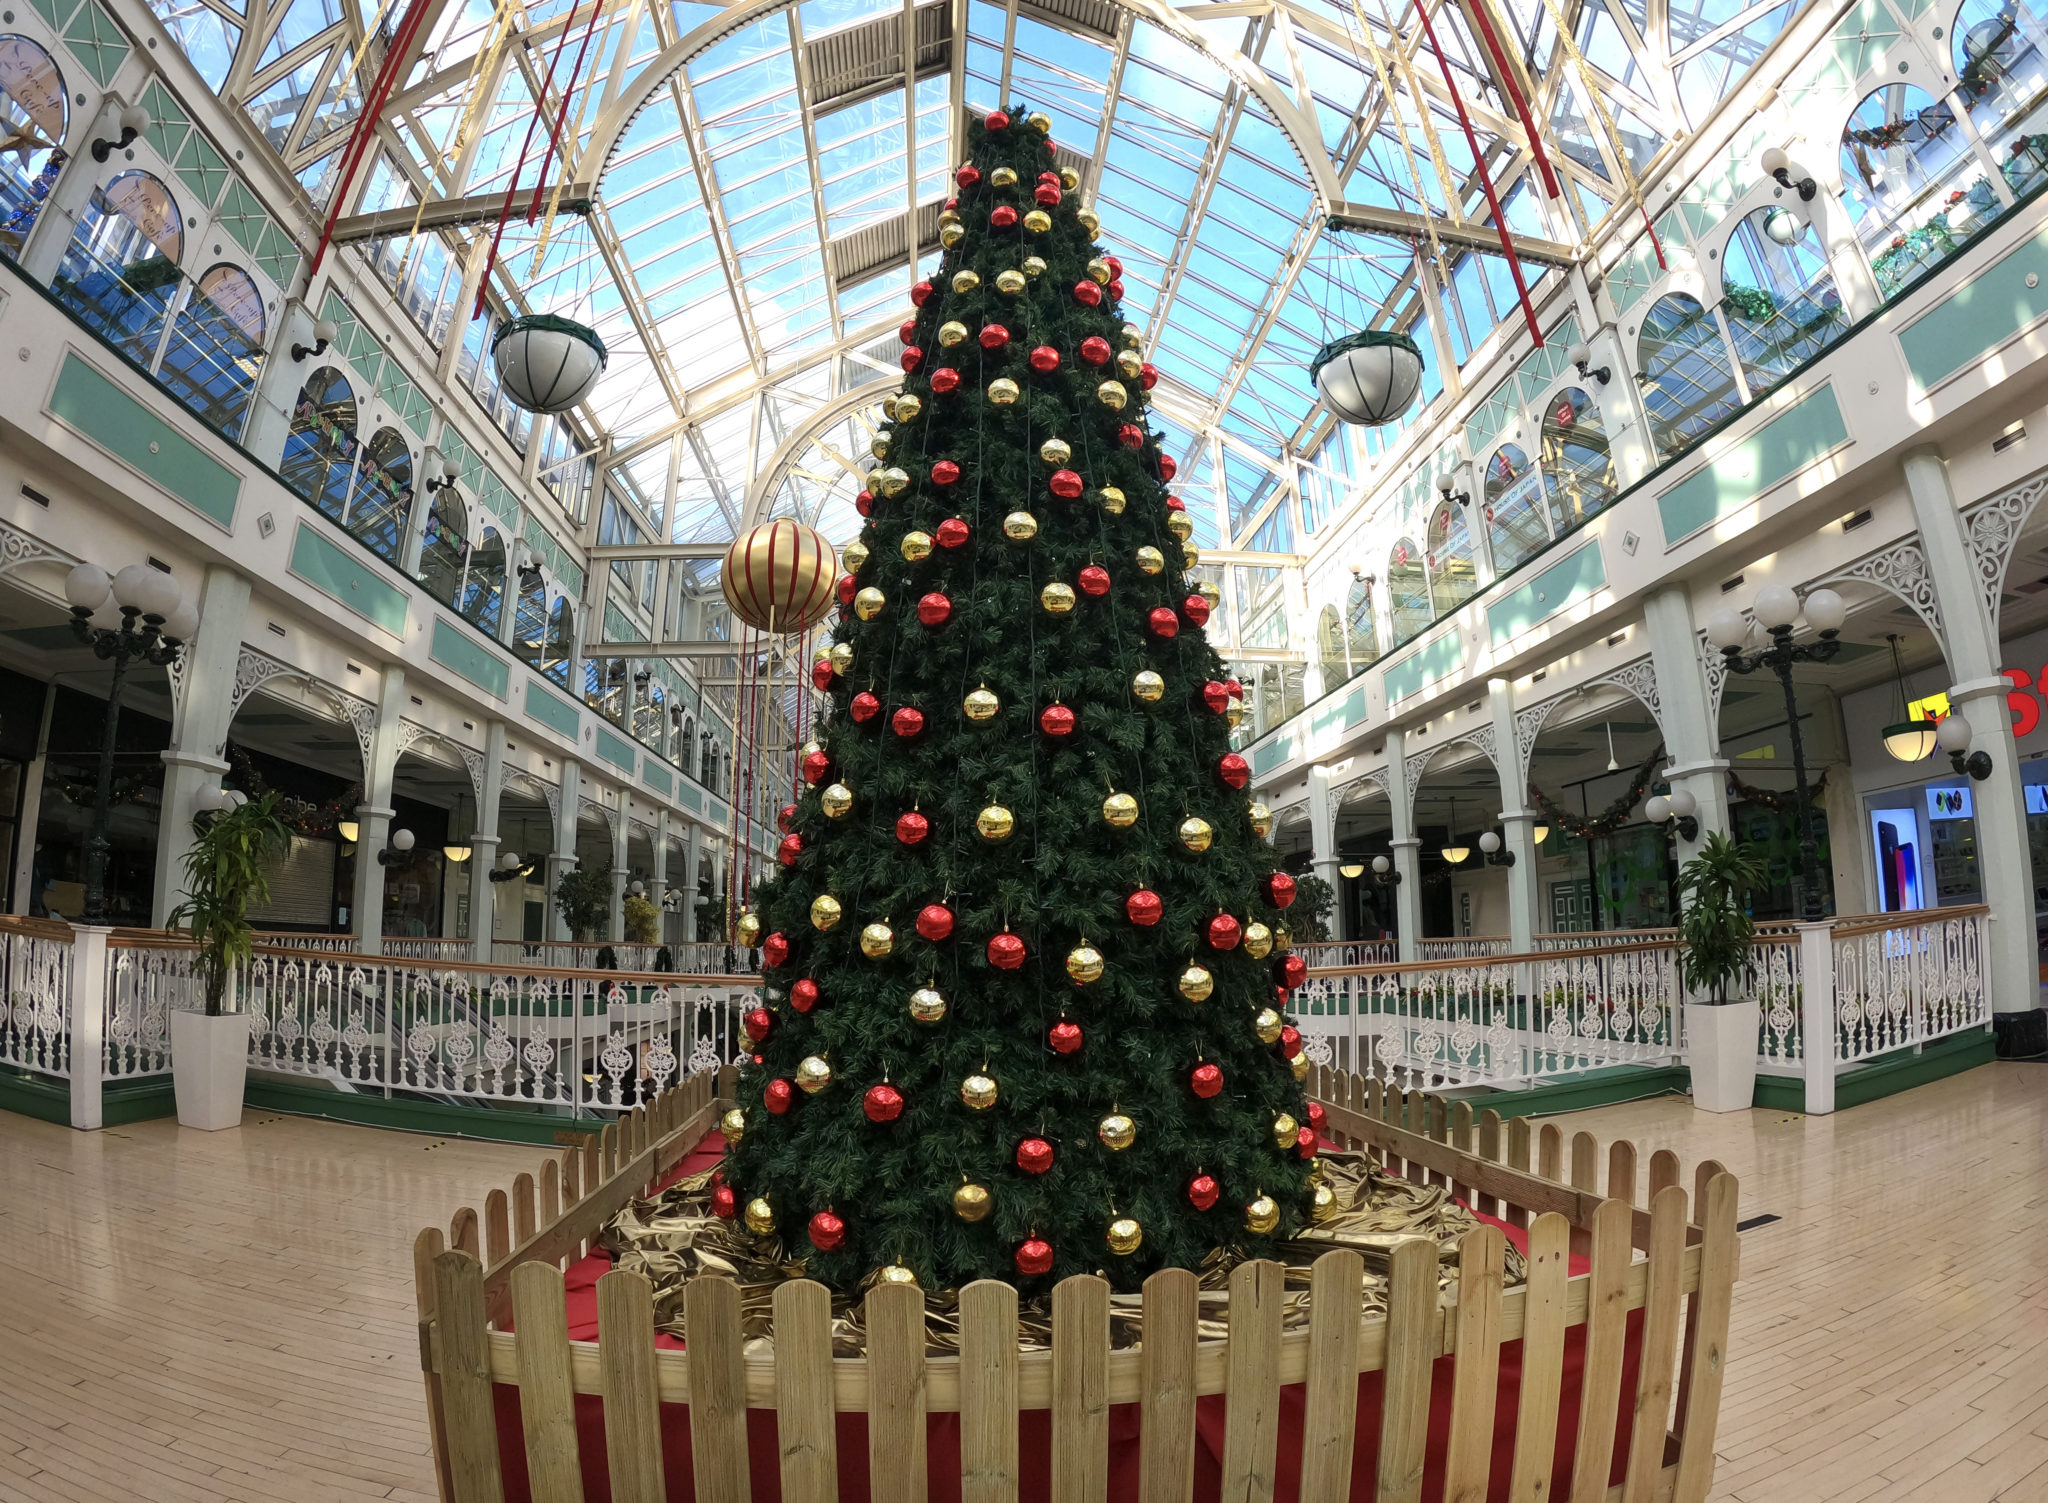 Take a look at your Christmas tree pics!